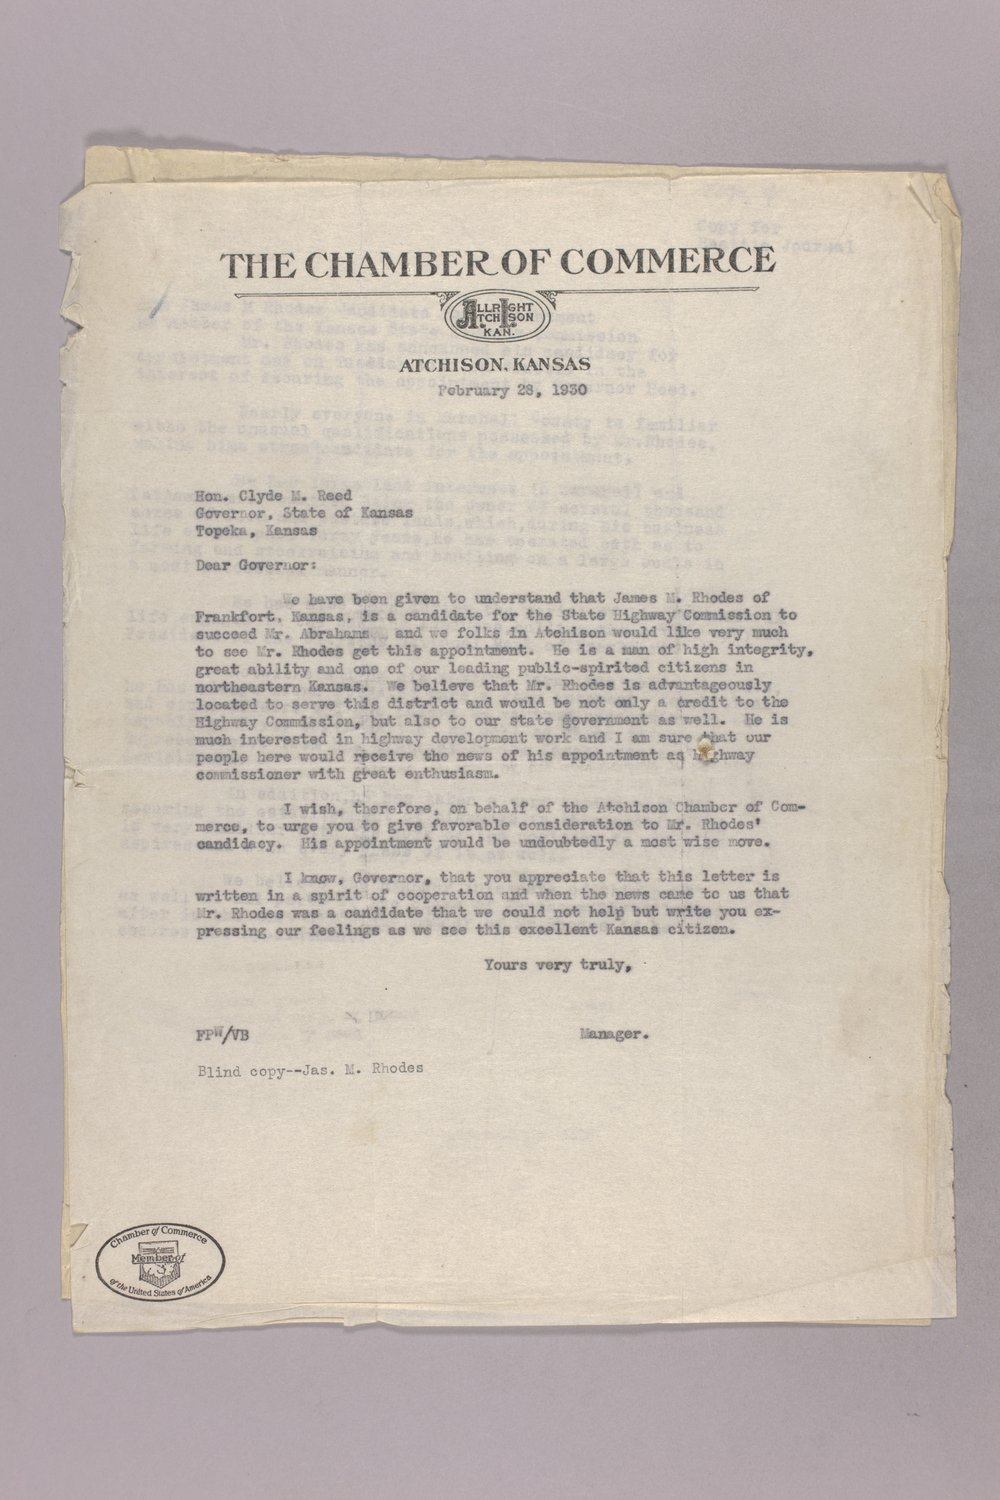 Governor Clyde M. Reed correspondence, commission appointments - 3